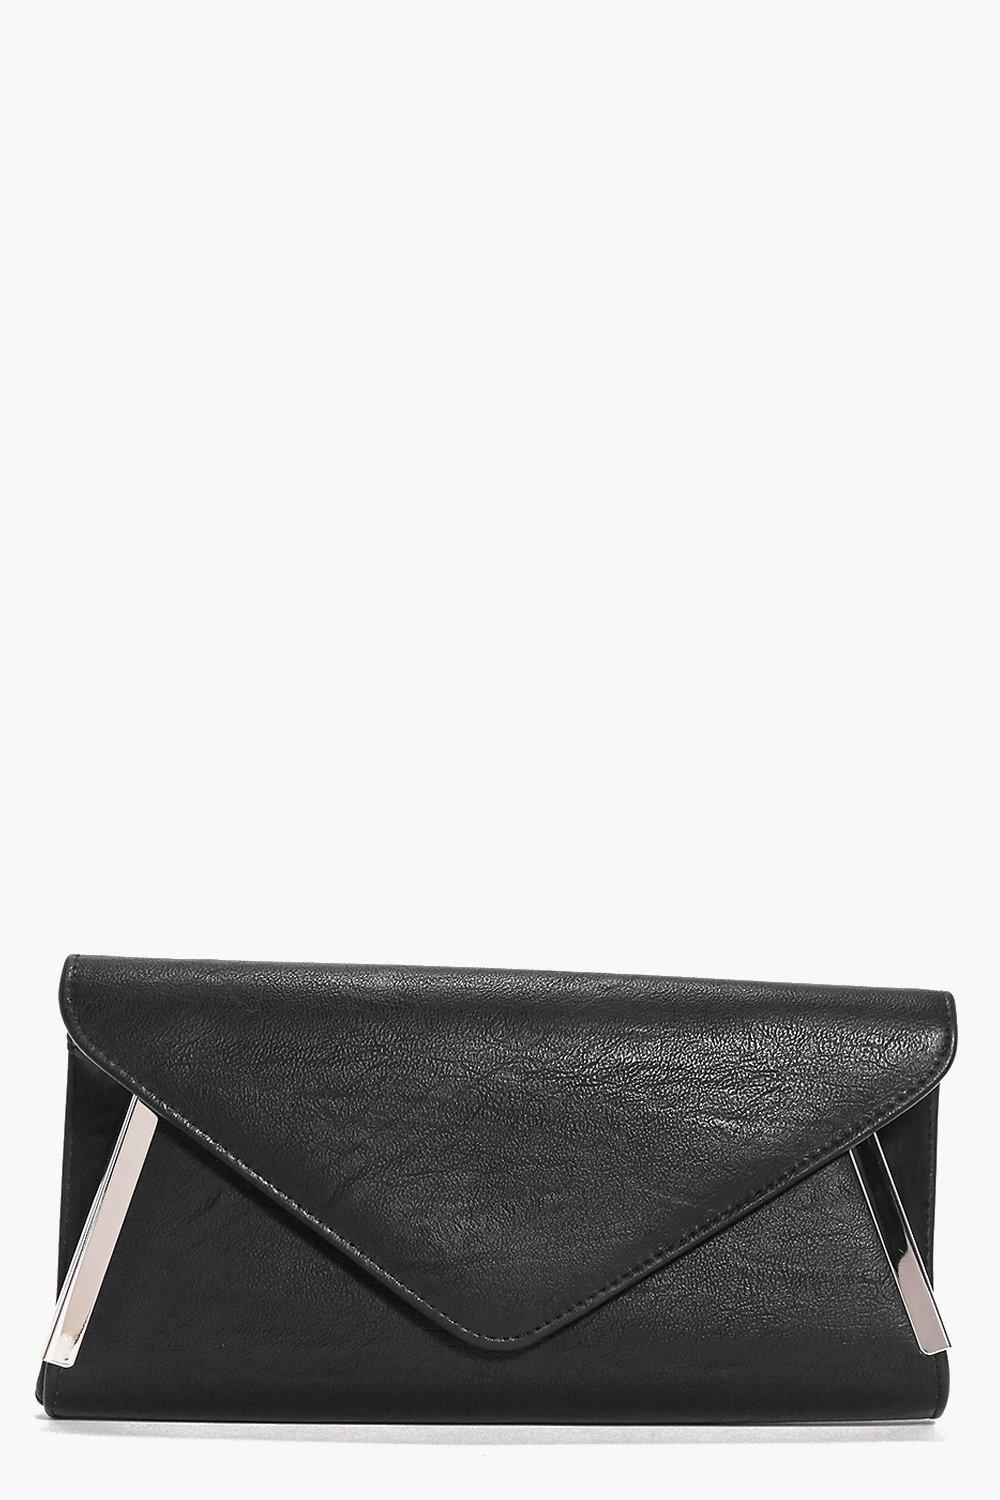 Metal Detail Envelope Clutch Bag black